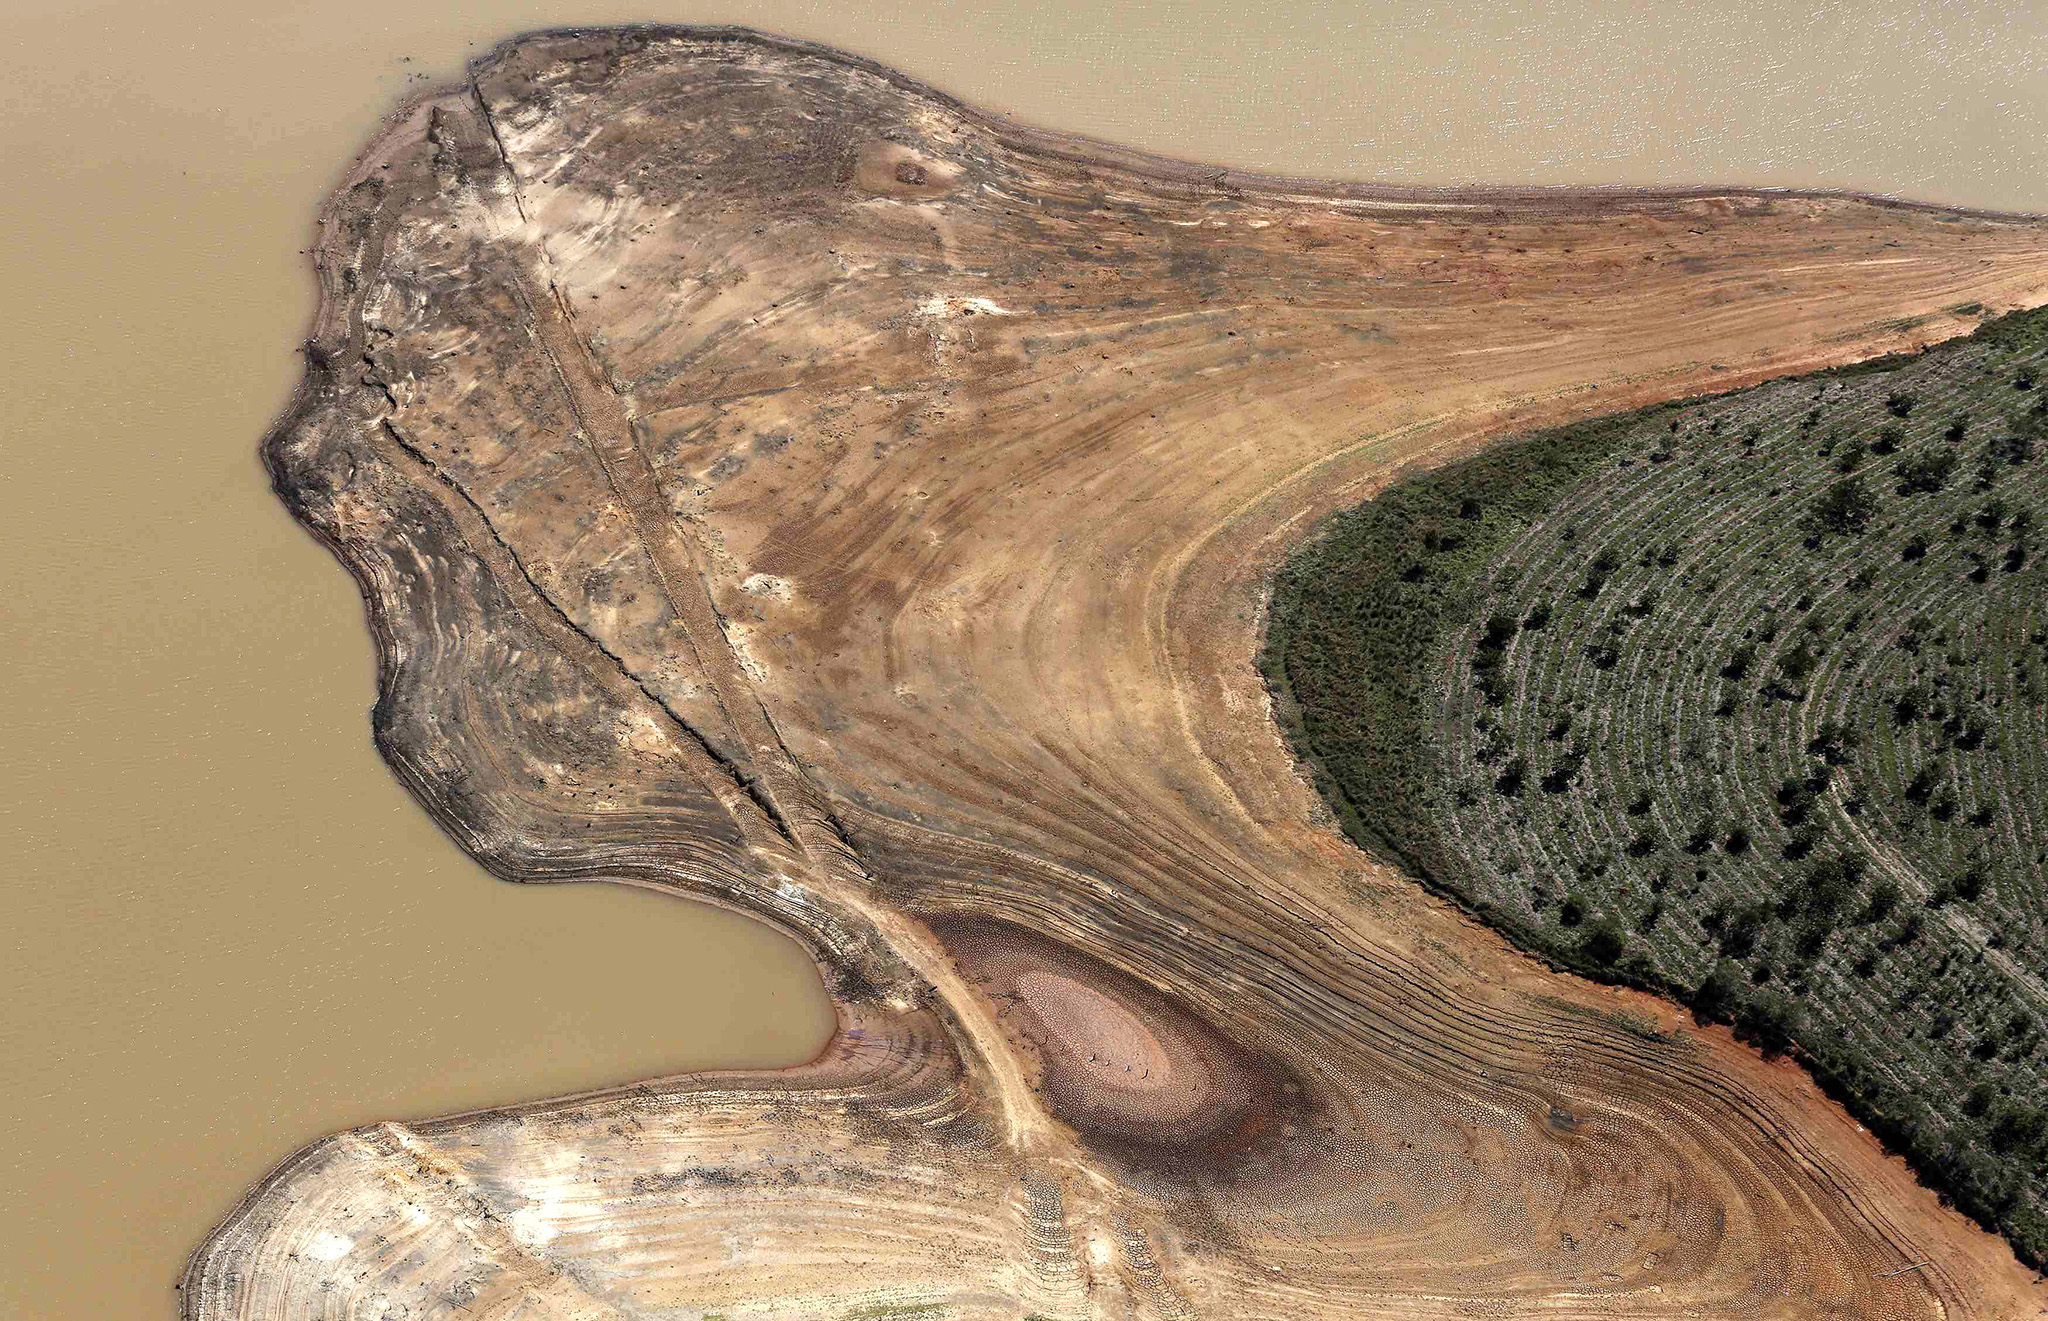 Aerial view of the Atibainha dam, part of the Cantareira reservoir, during a drought in Braganca Paulista, Sao Paulo state